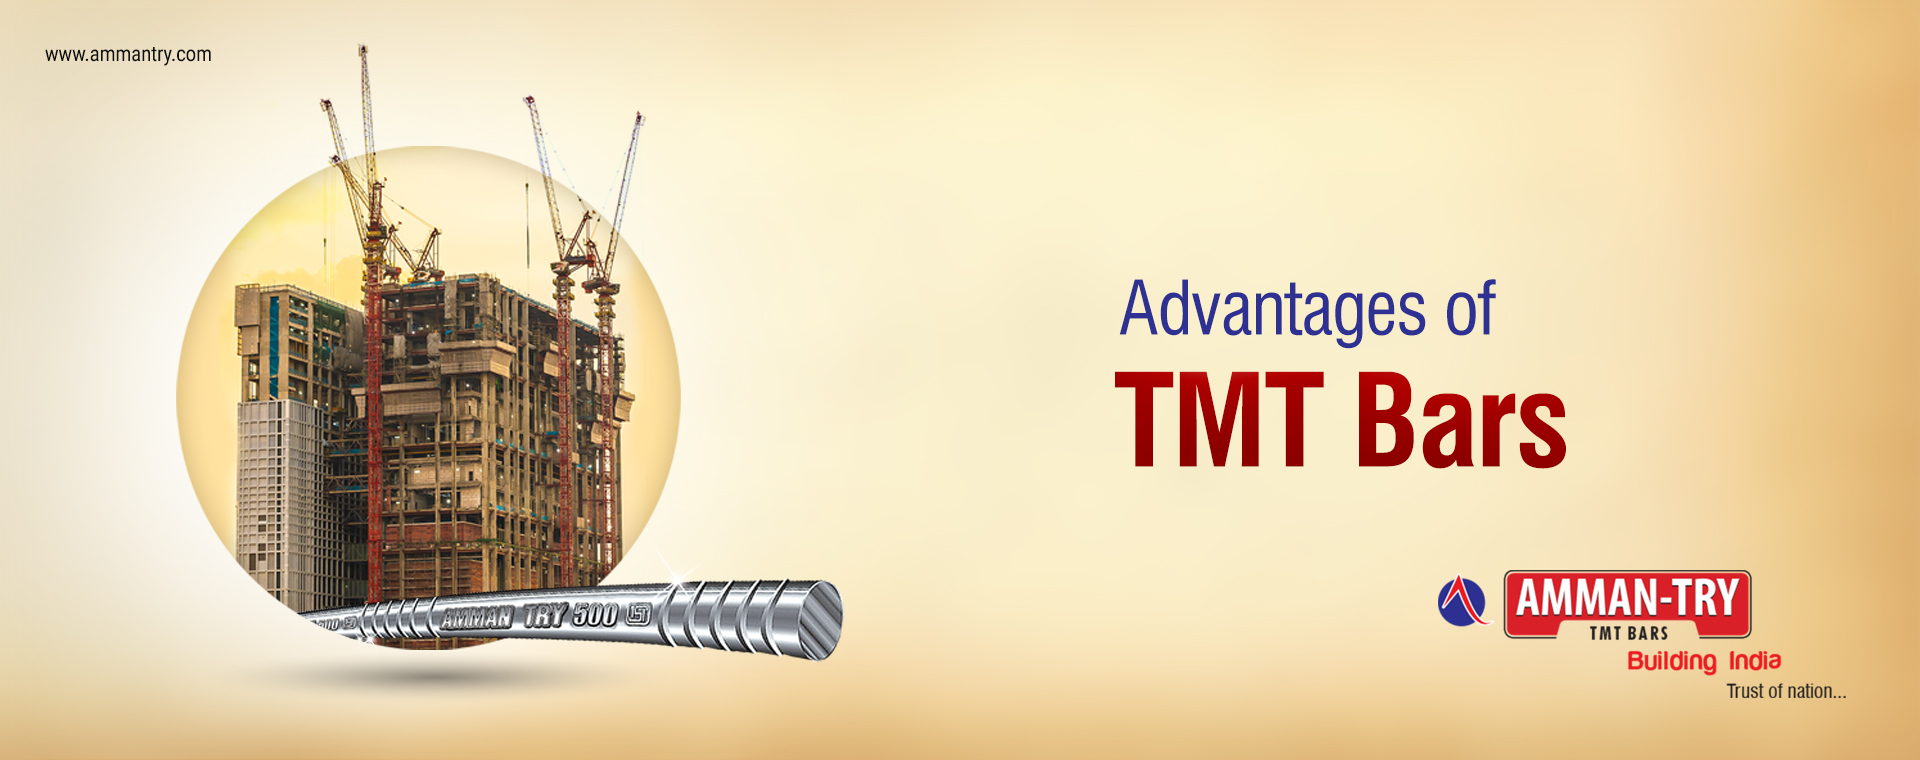 Advantages of TMT Bars